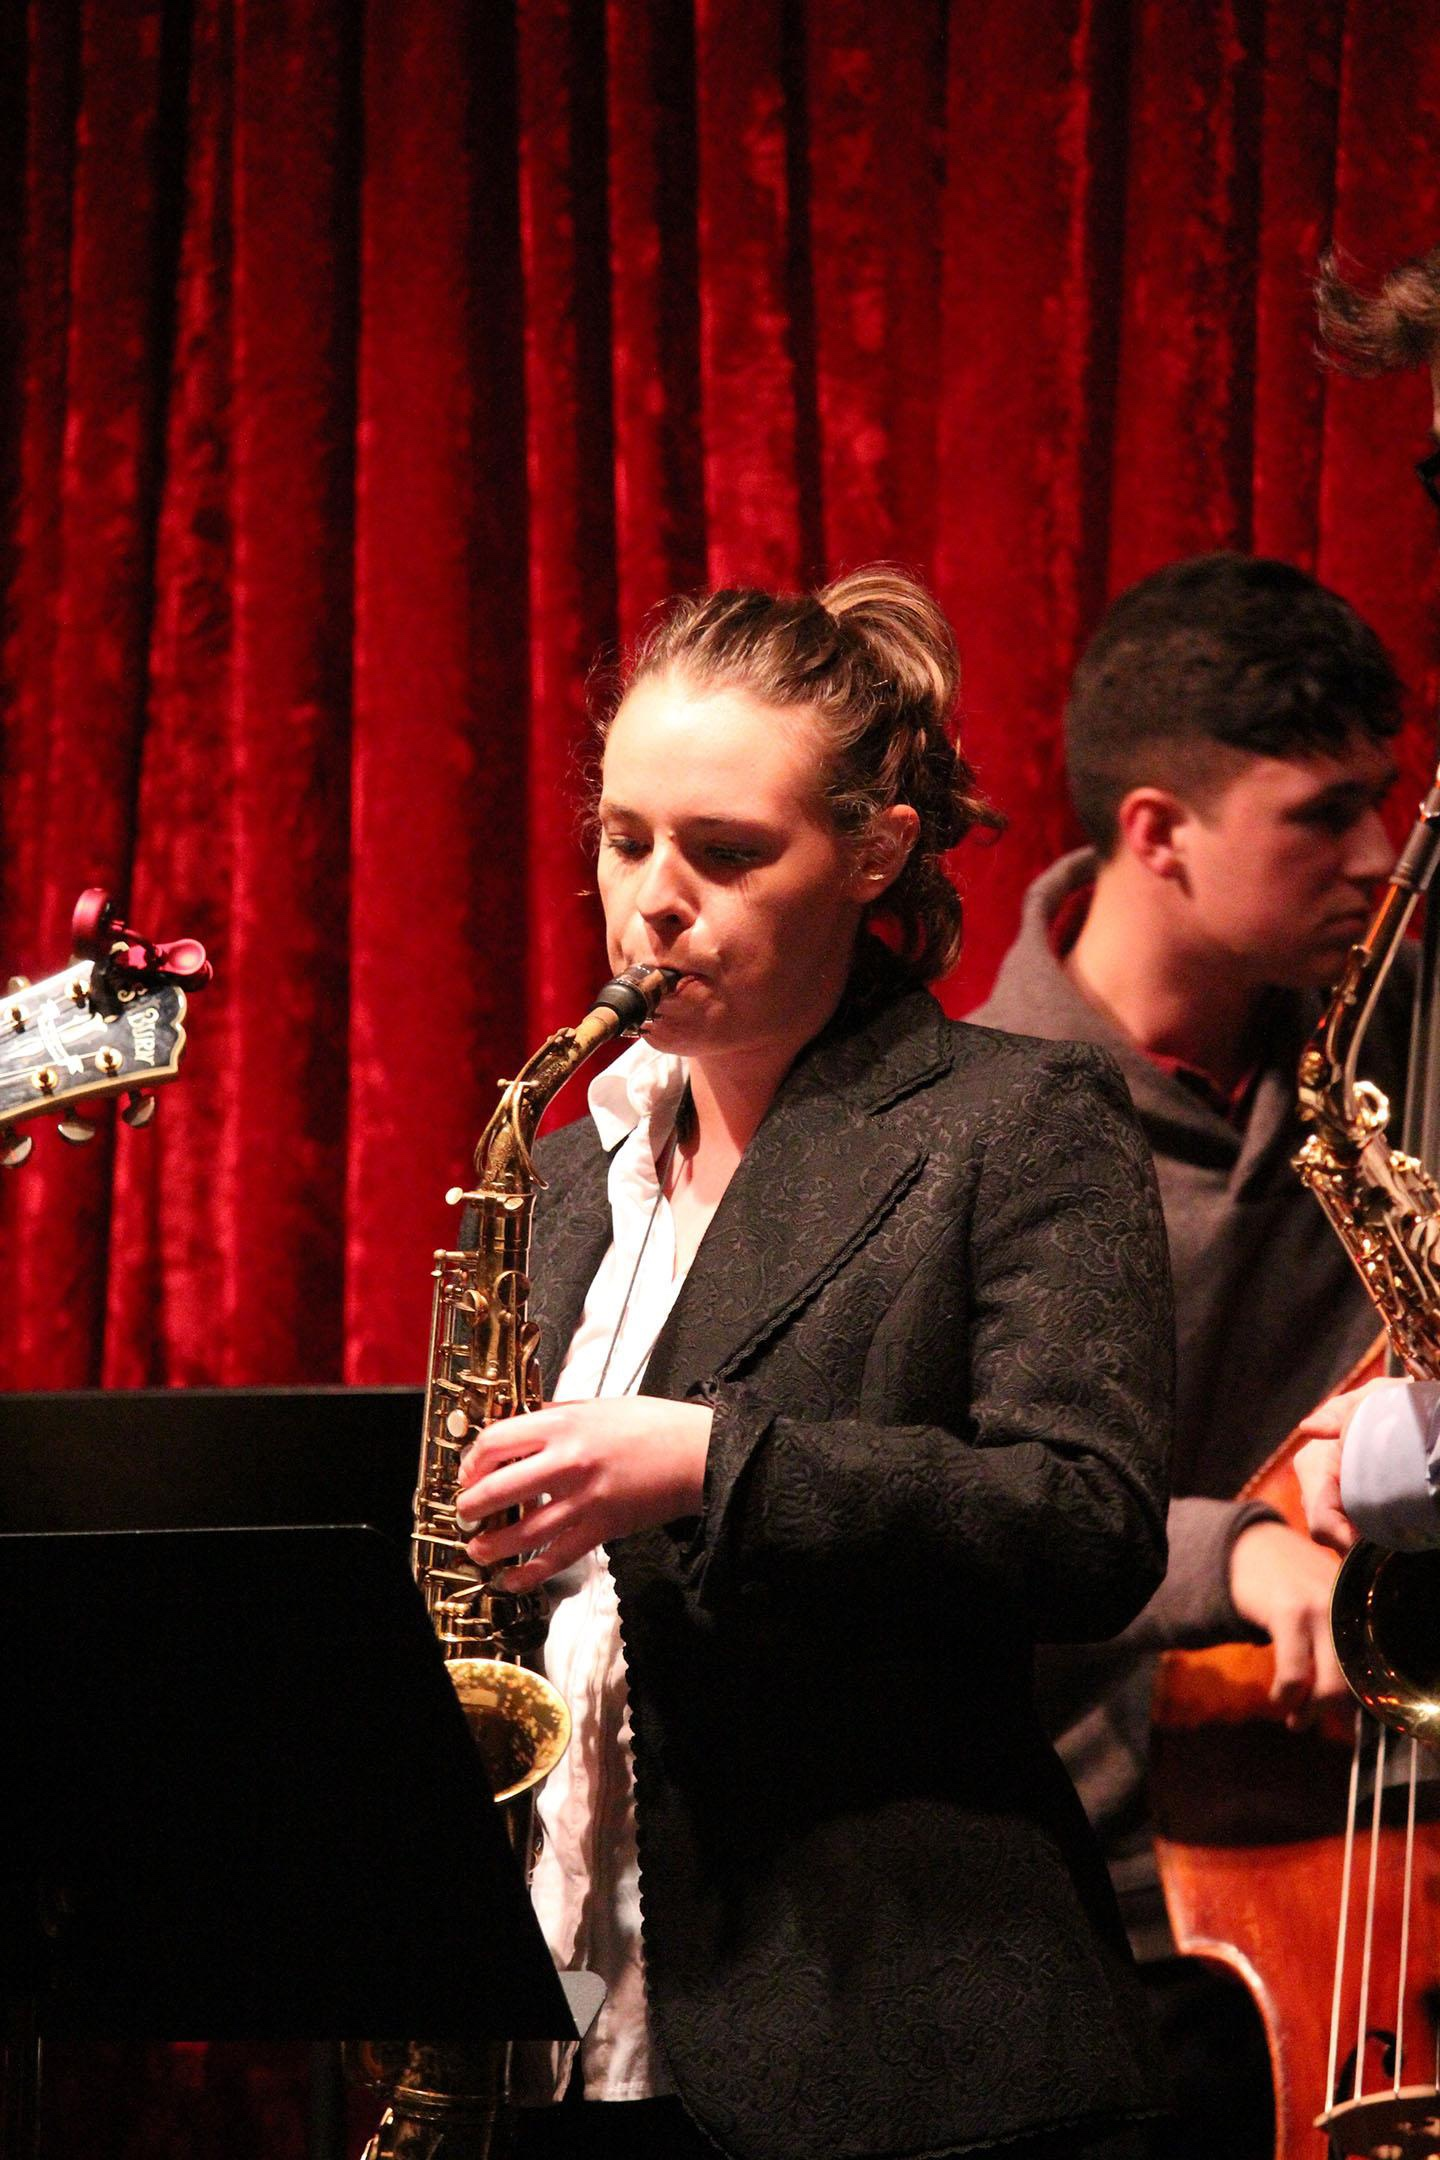 Olivia Fields - Saxophone player extraordinaire from Portland teaches all skill levels and ages and styles from jazz, classical repertoire, funk, soul, rock and pop. Learn more about Olivia.